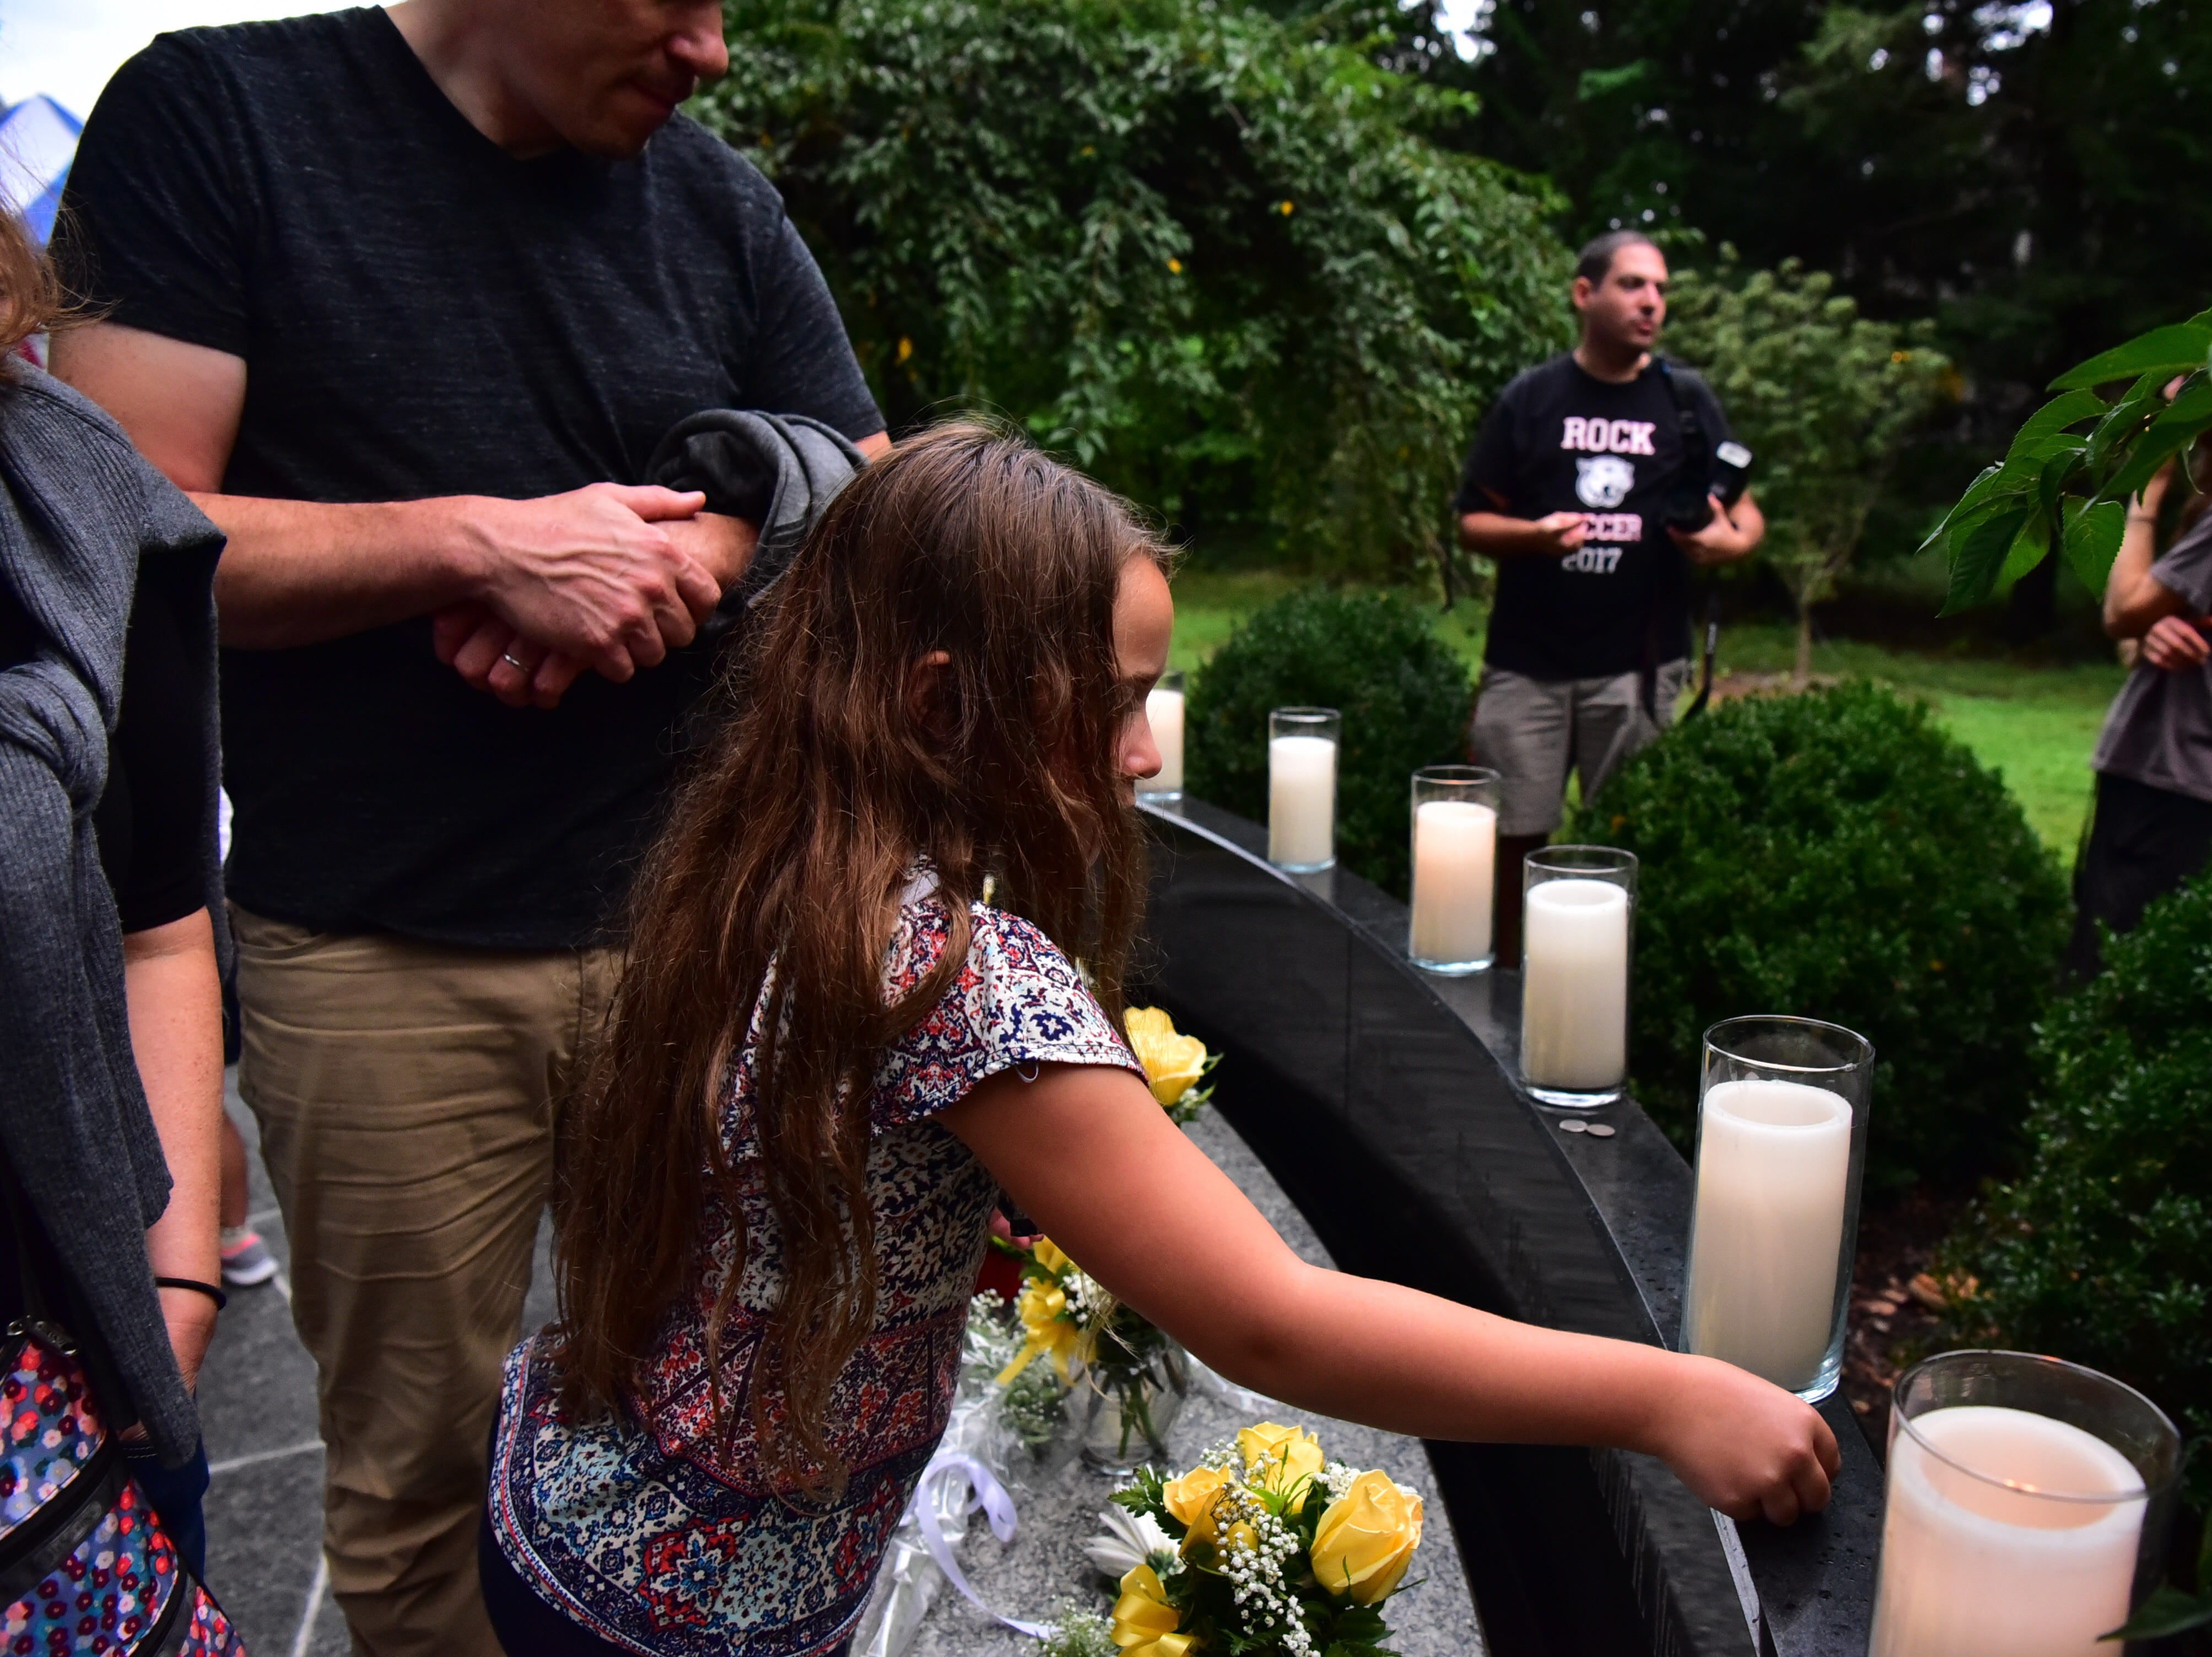 Charlotte Mayer-Fuchs, 8, pays respect to her grand father who died on 9-11, in Glen Rock, NJ.